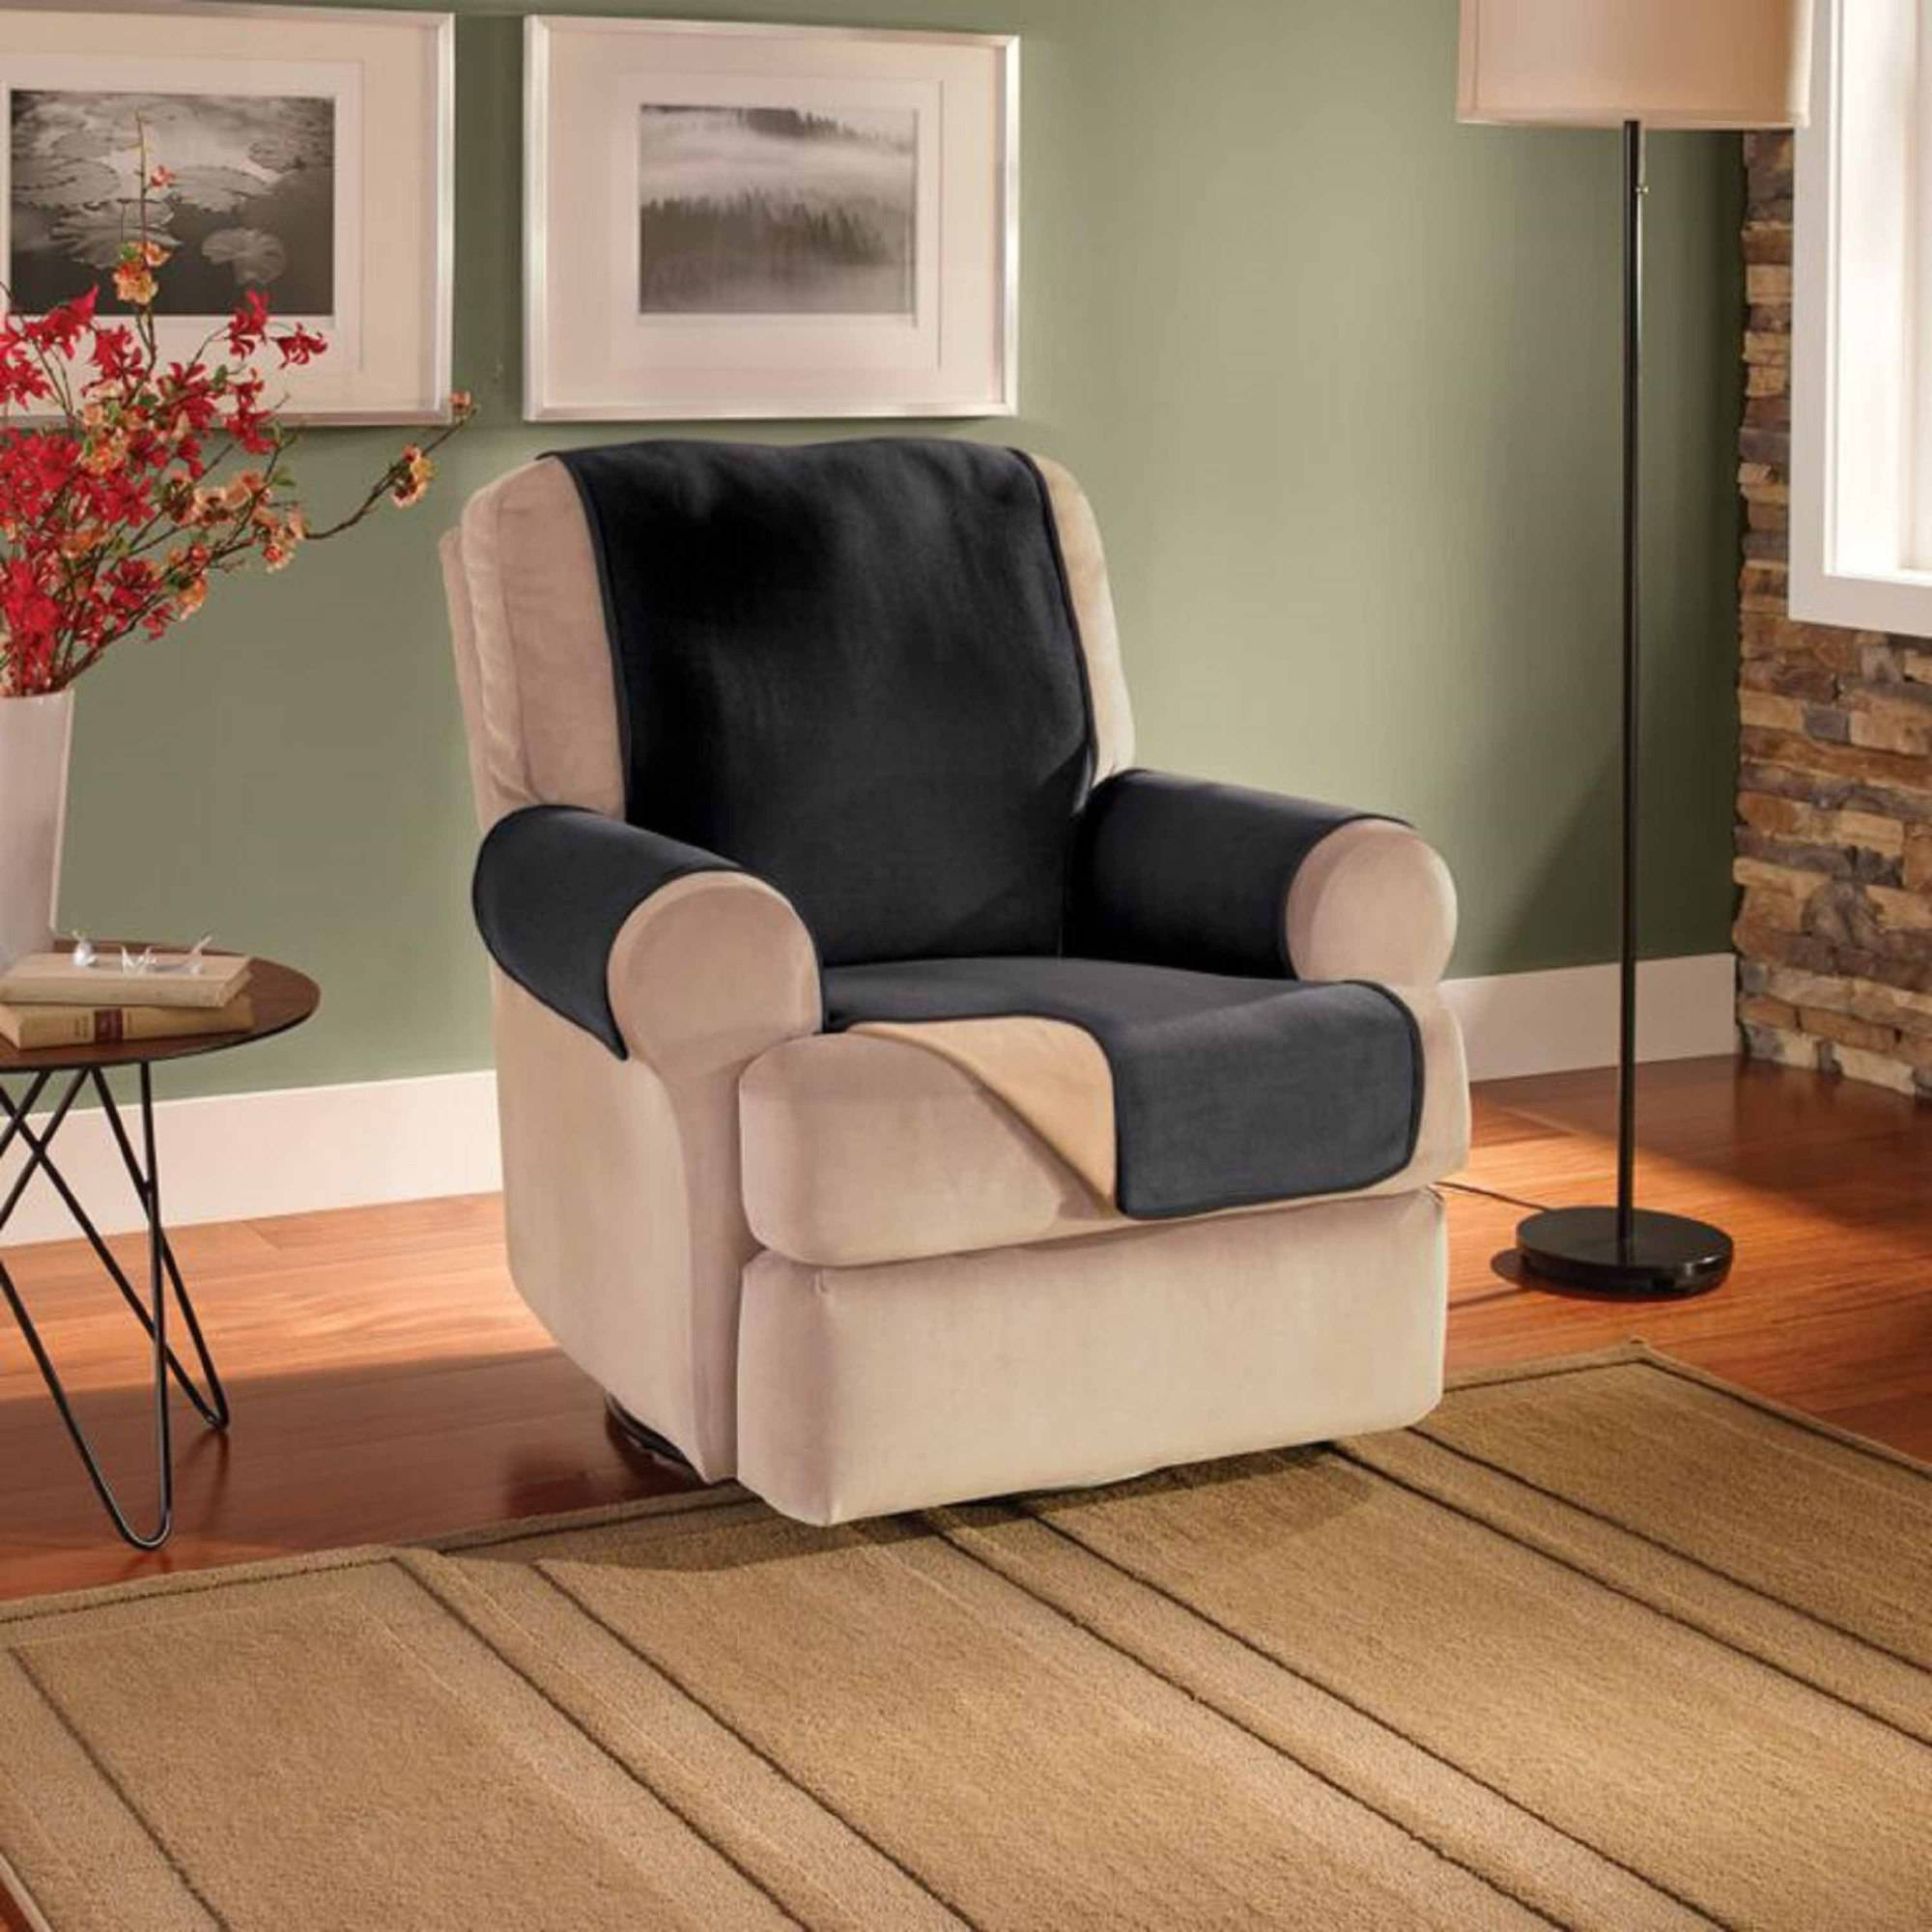 Innovative Textile Solutions Waterproof Reversible Fleece Recliner or Wing Chair Protector